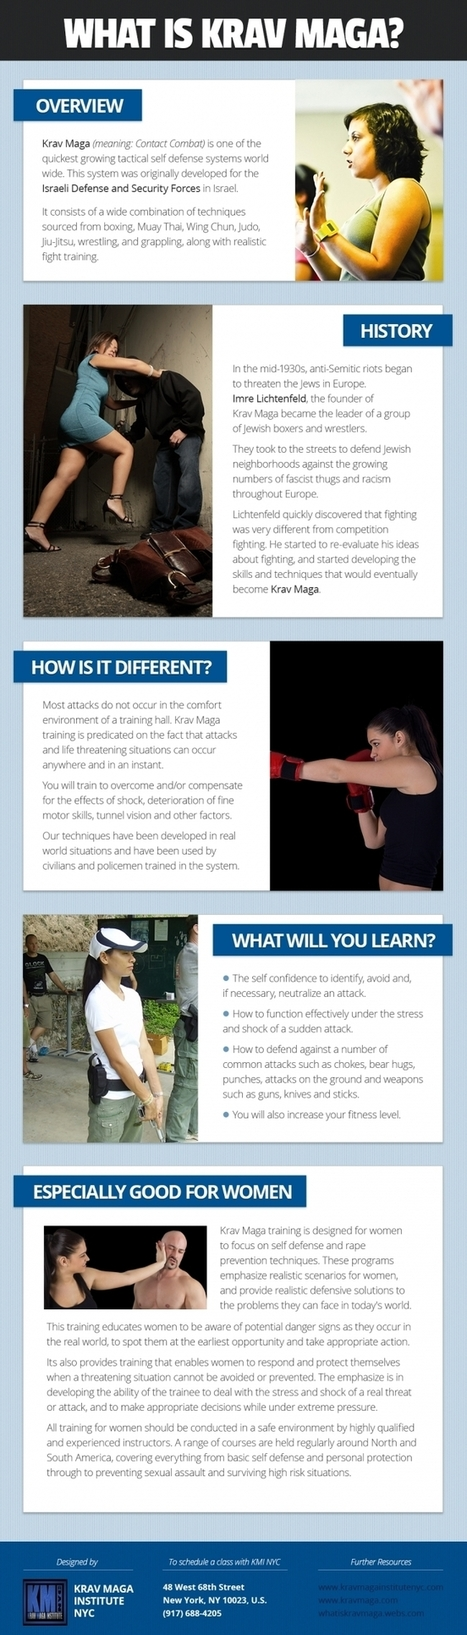 Krav Maga for women-empower women [infographic] | Guarded Girls | Scoop.it